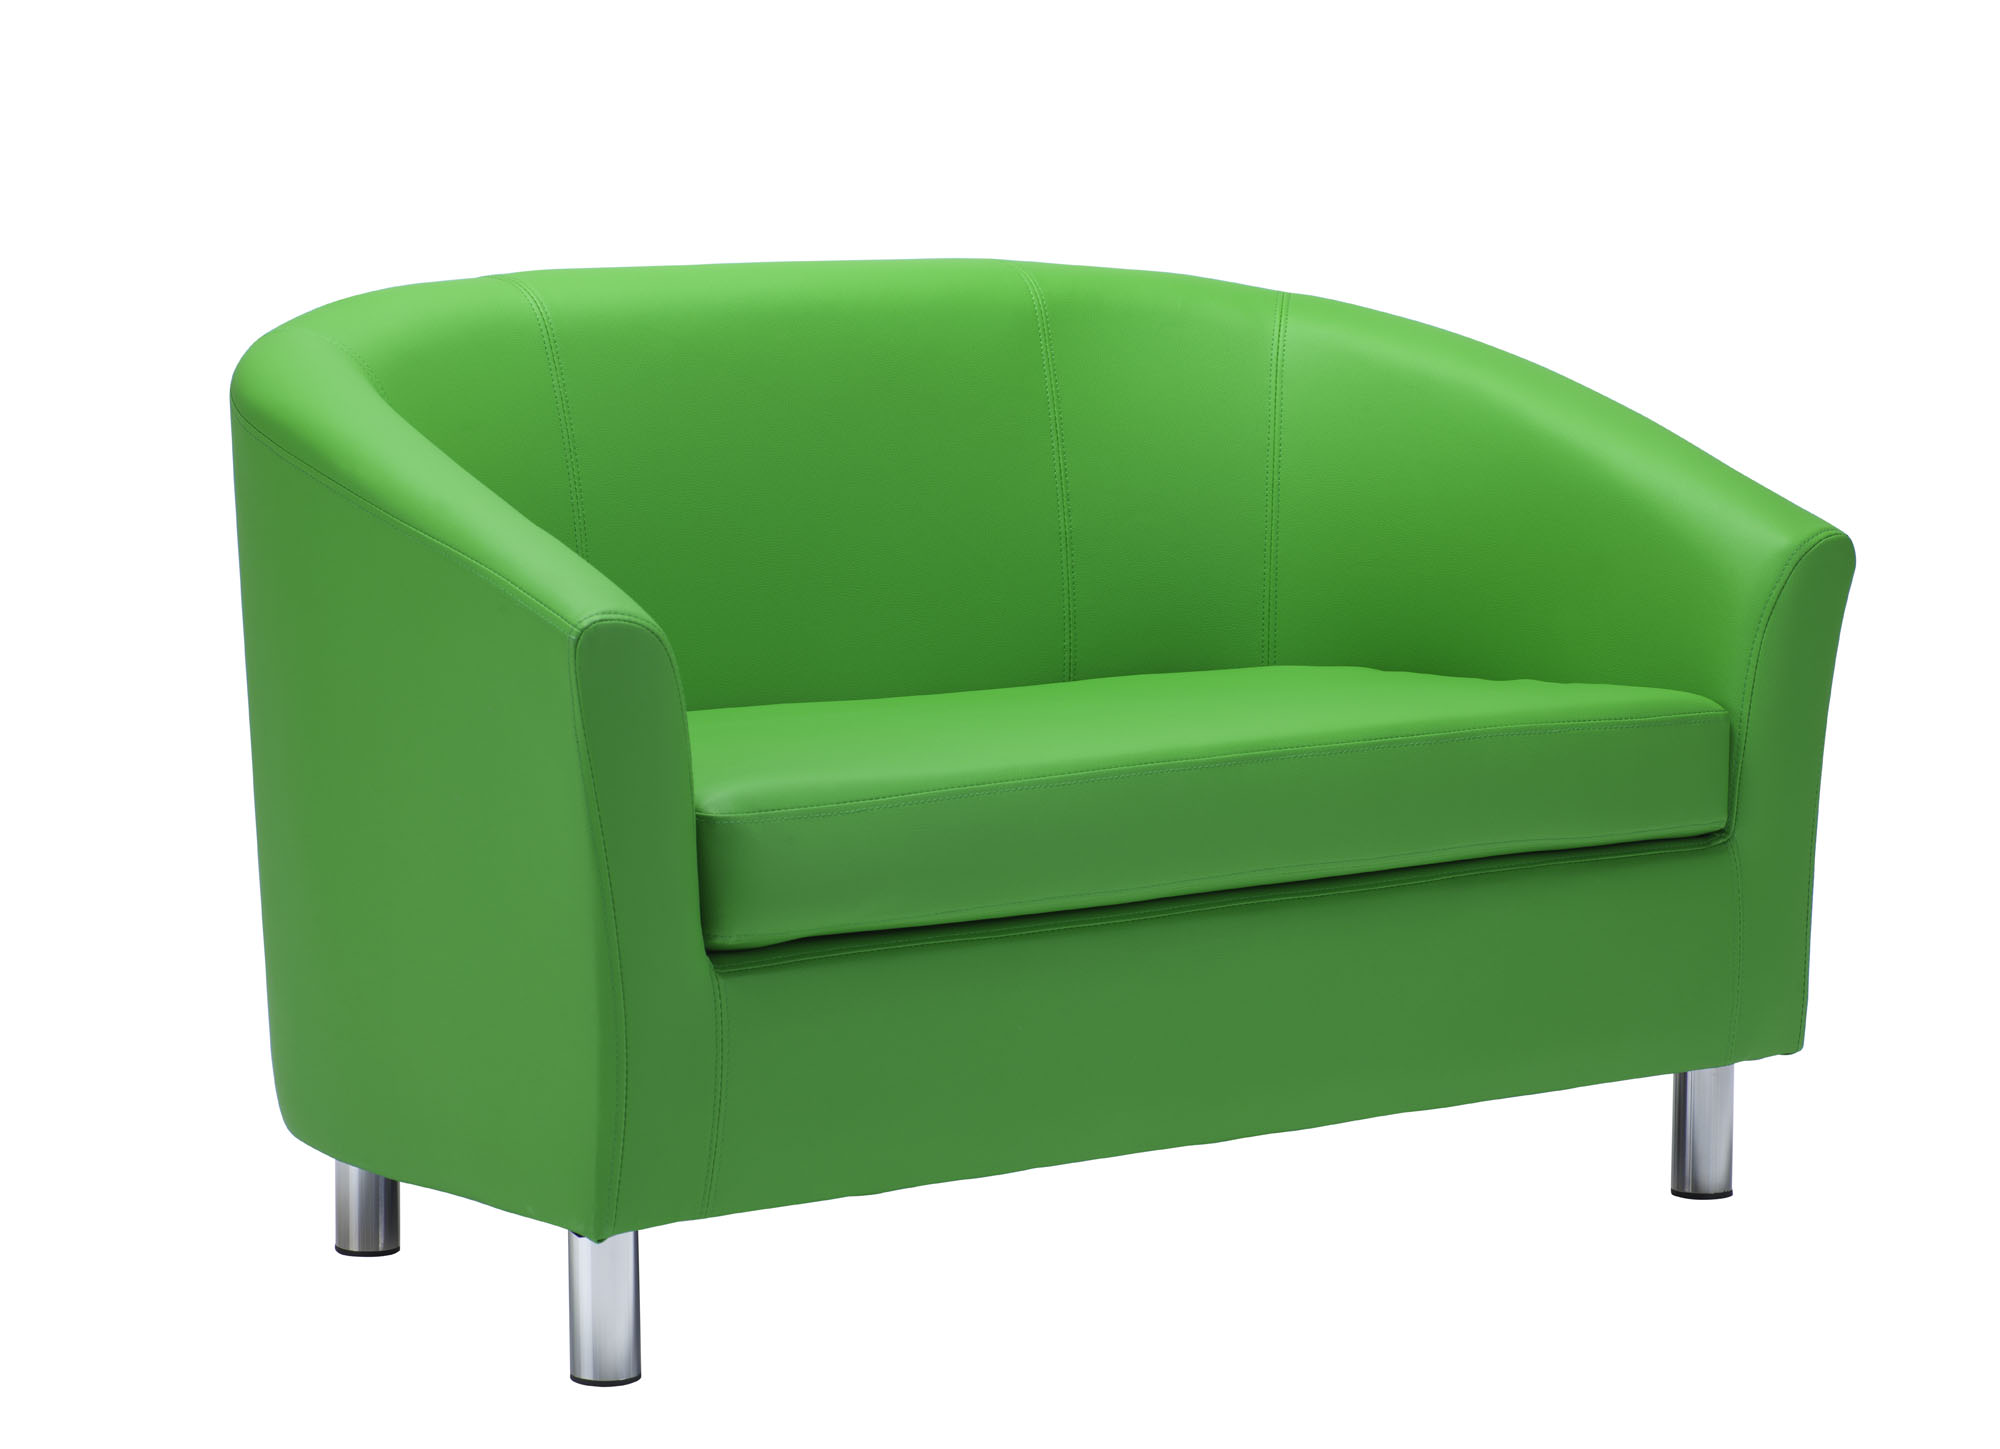 JM Office twin tub green PU couch